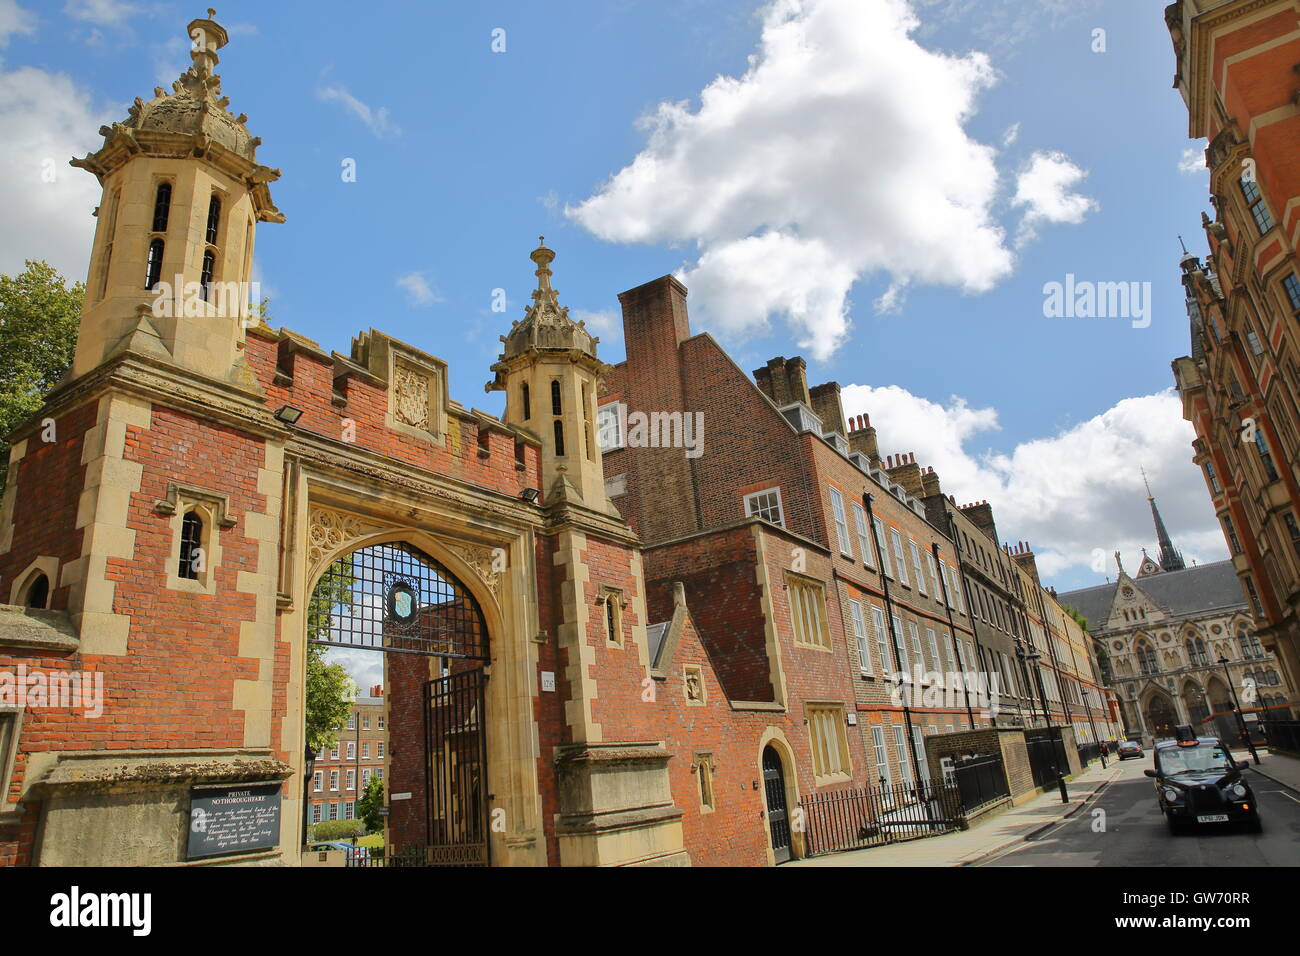 Lincoln's Inn : view of an entrance from Lincoln's Inn fields, London, Great Britain - Stock Image